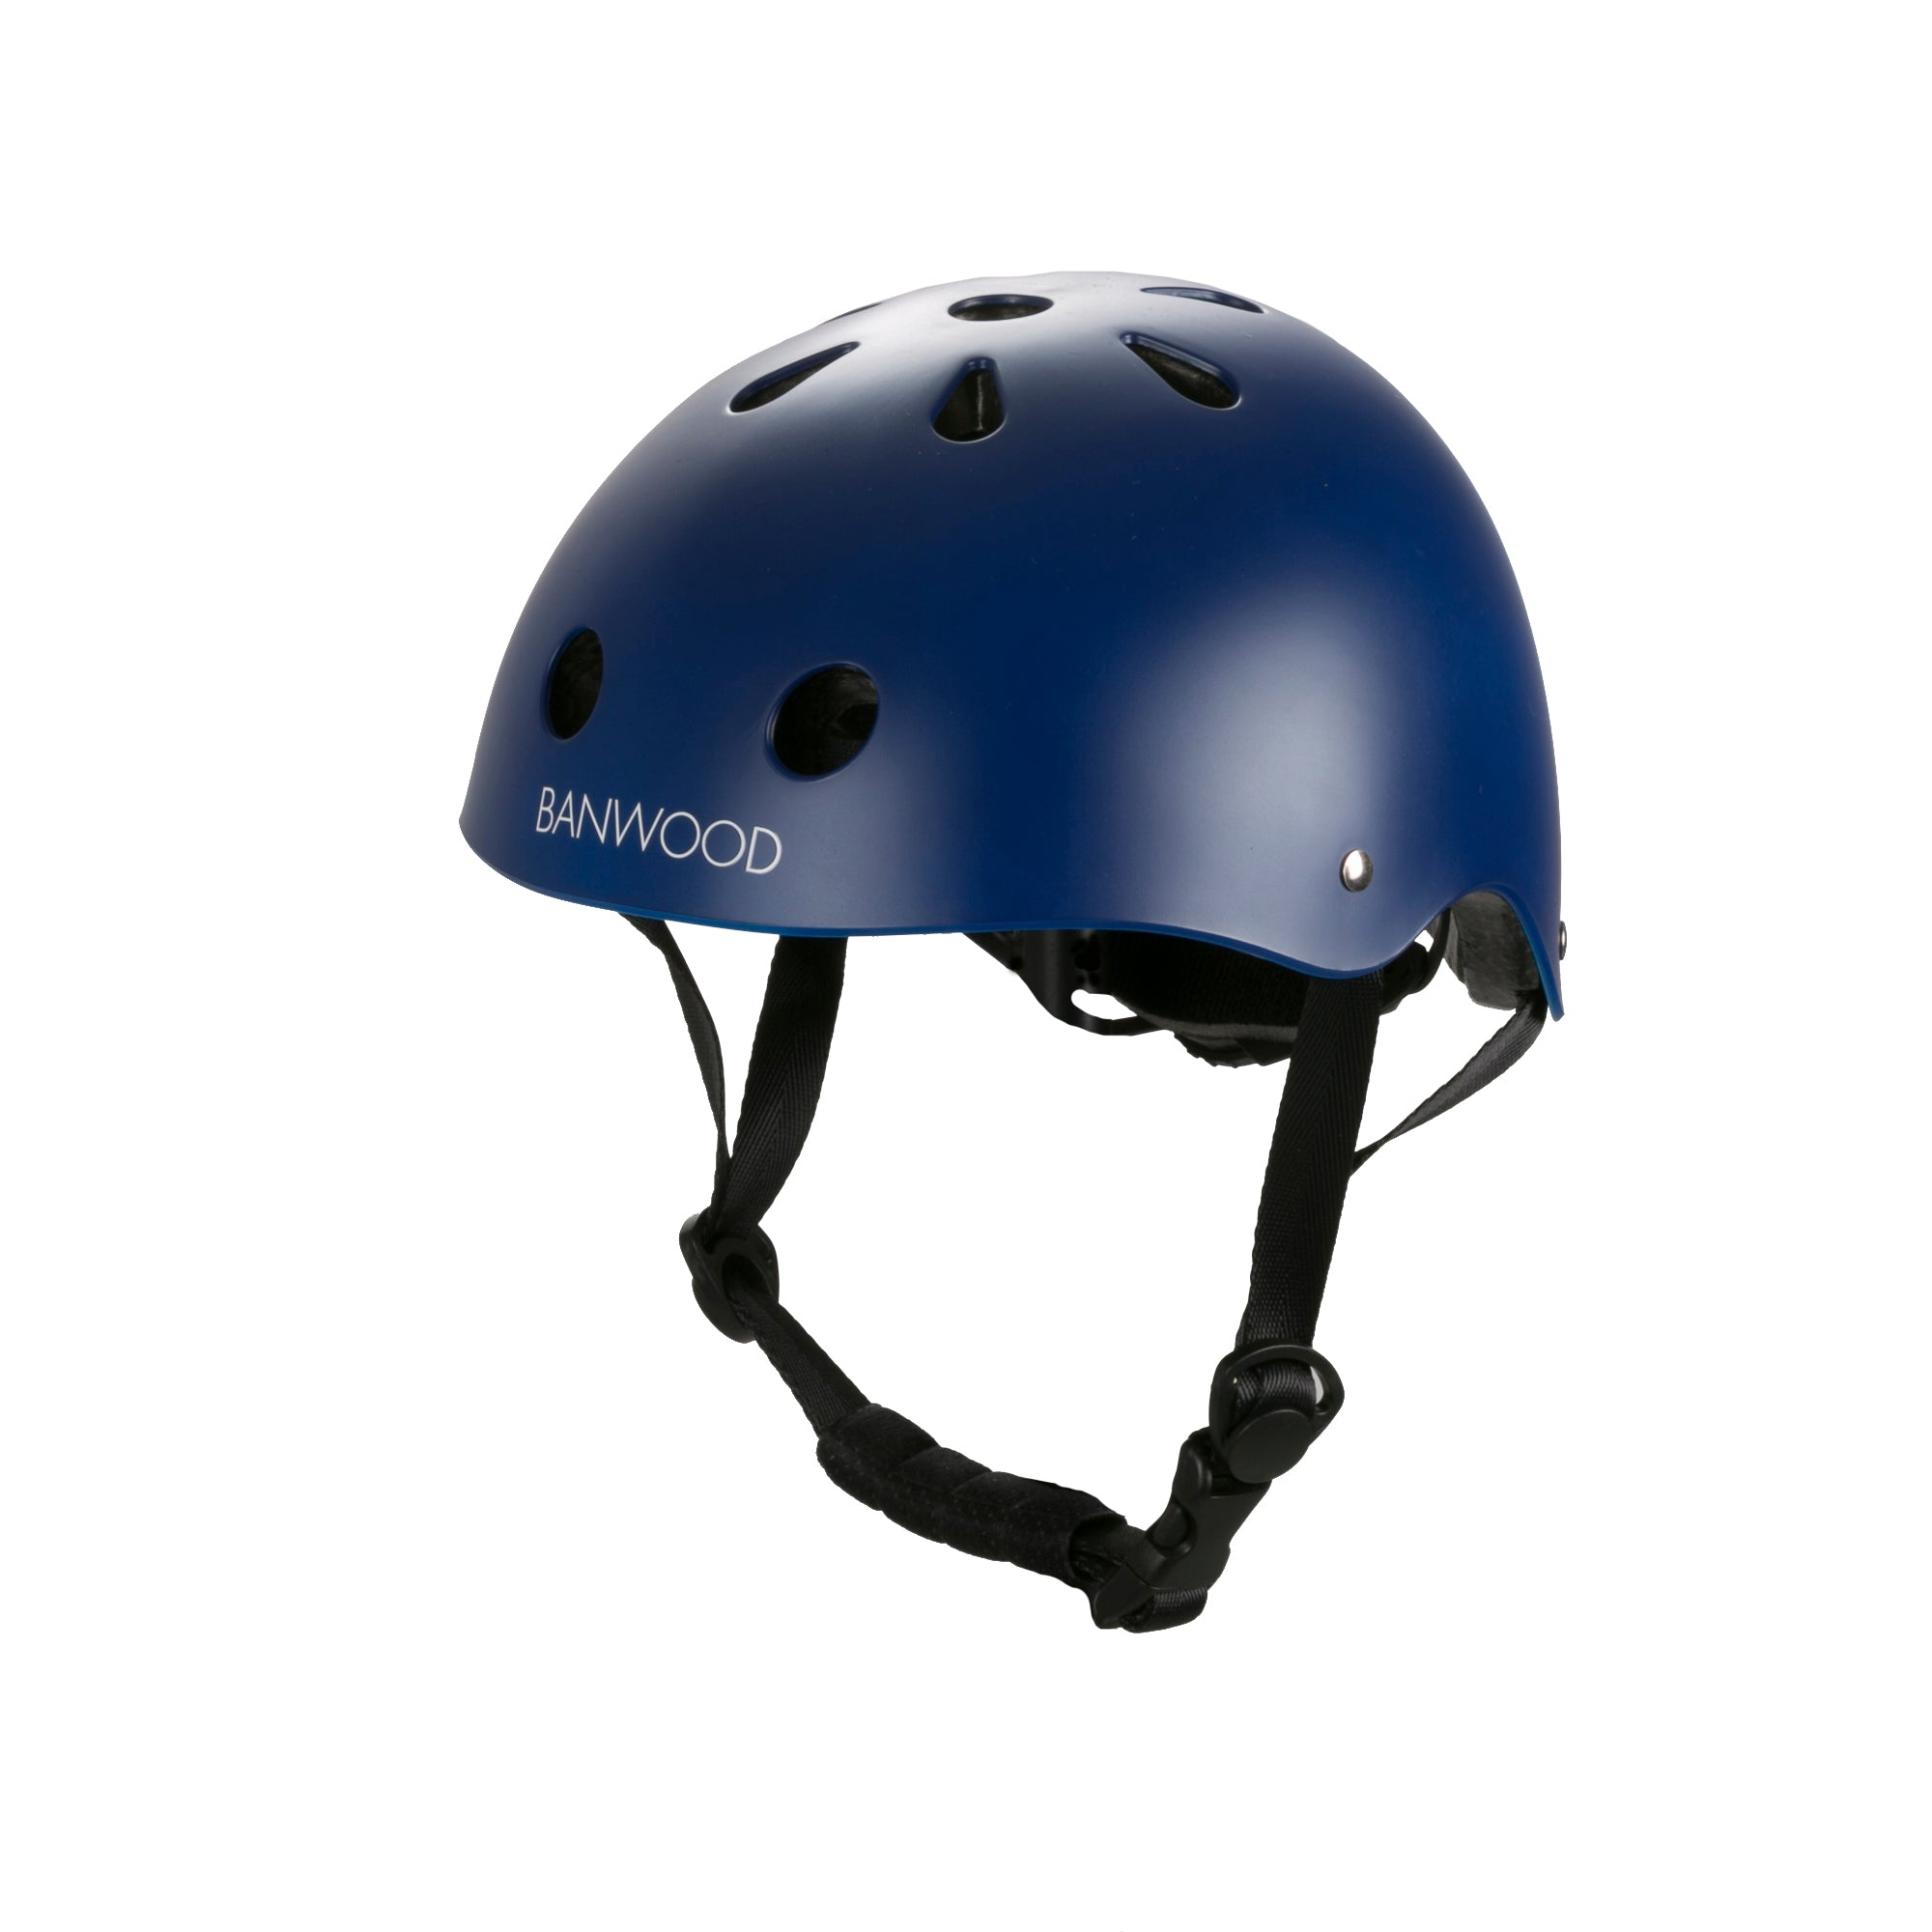 Banwood Banwood Classic Helmet - Matte Navy - Pearls & Swines